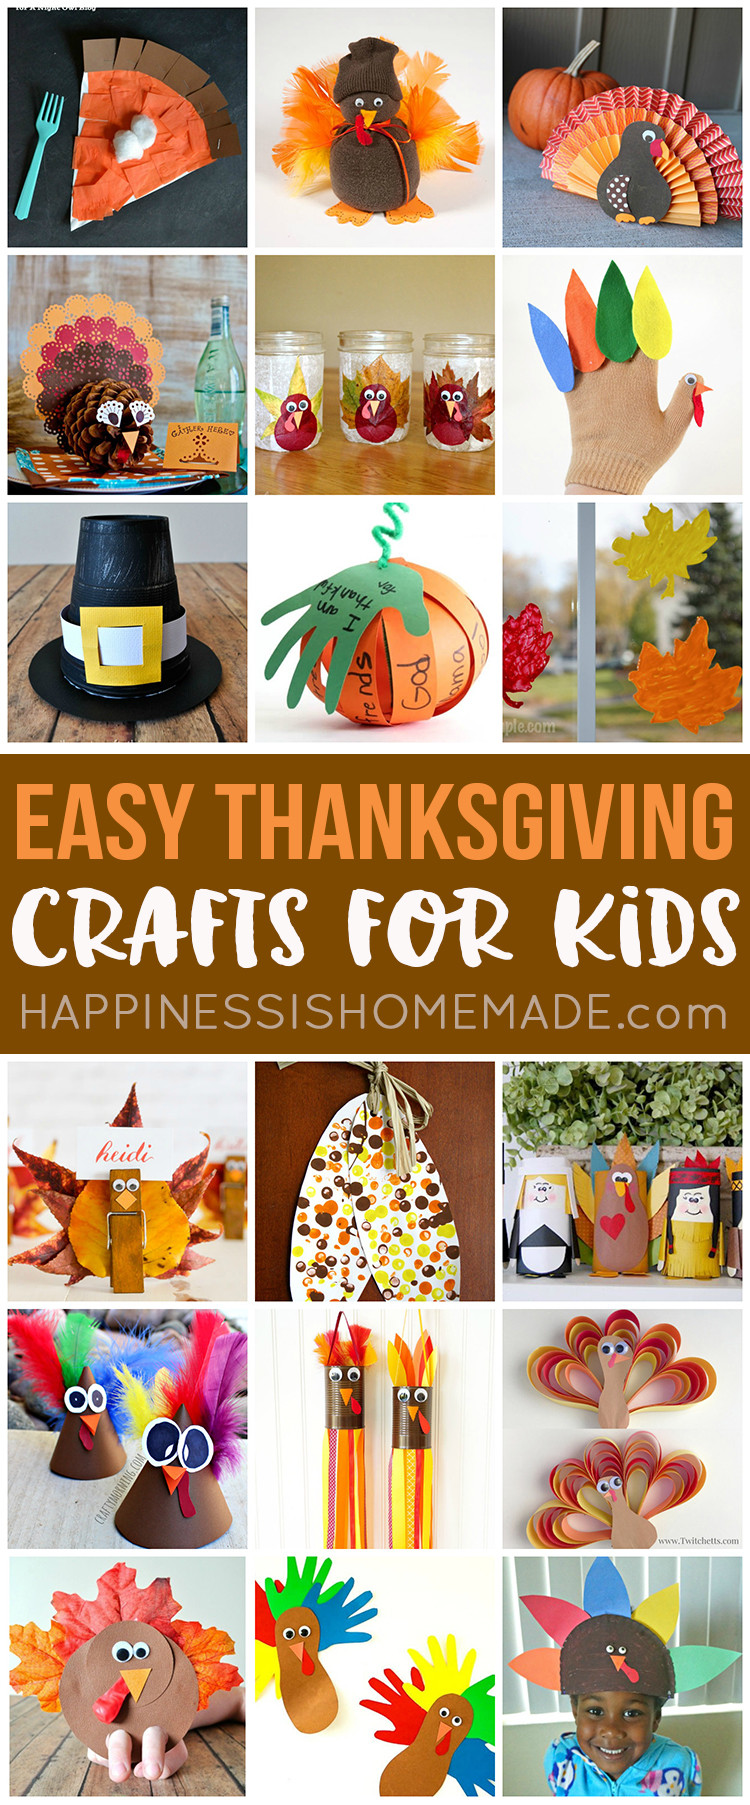 Homemade Crafts For Toddlers  Easy Thanksgiving Crafts for Kids to Make Happiness is